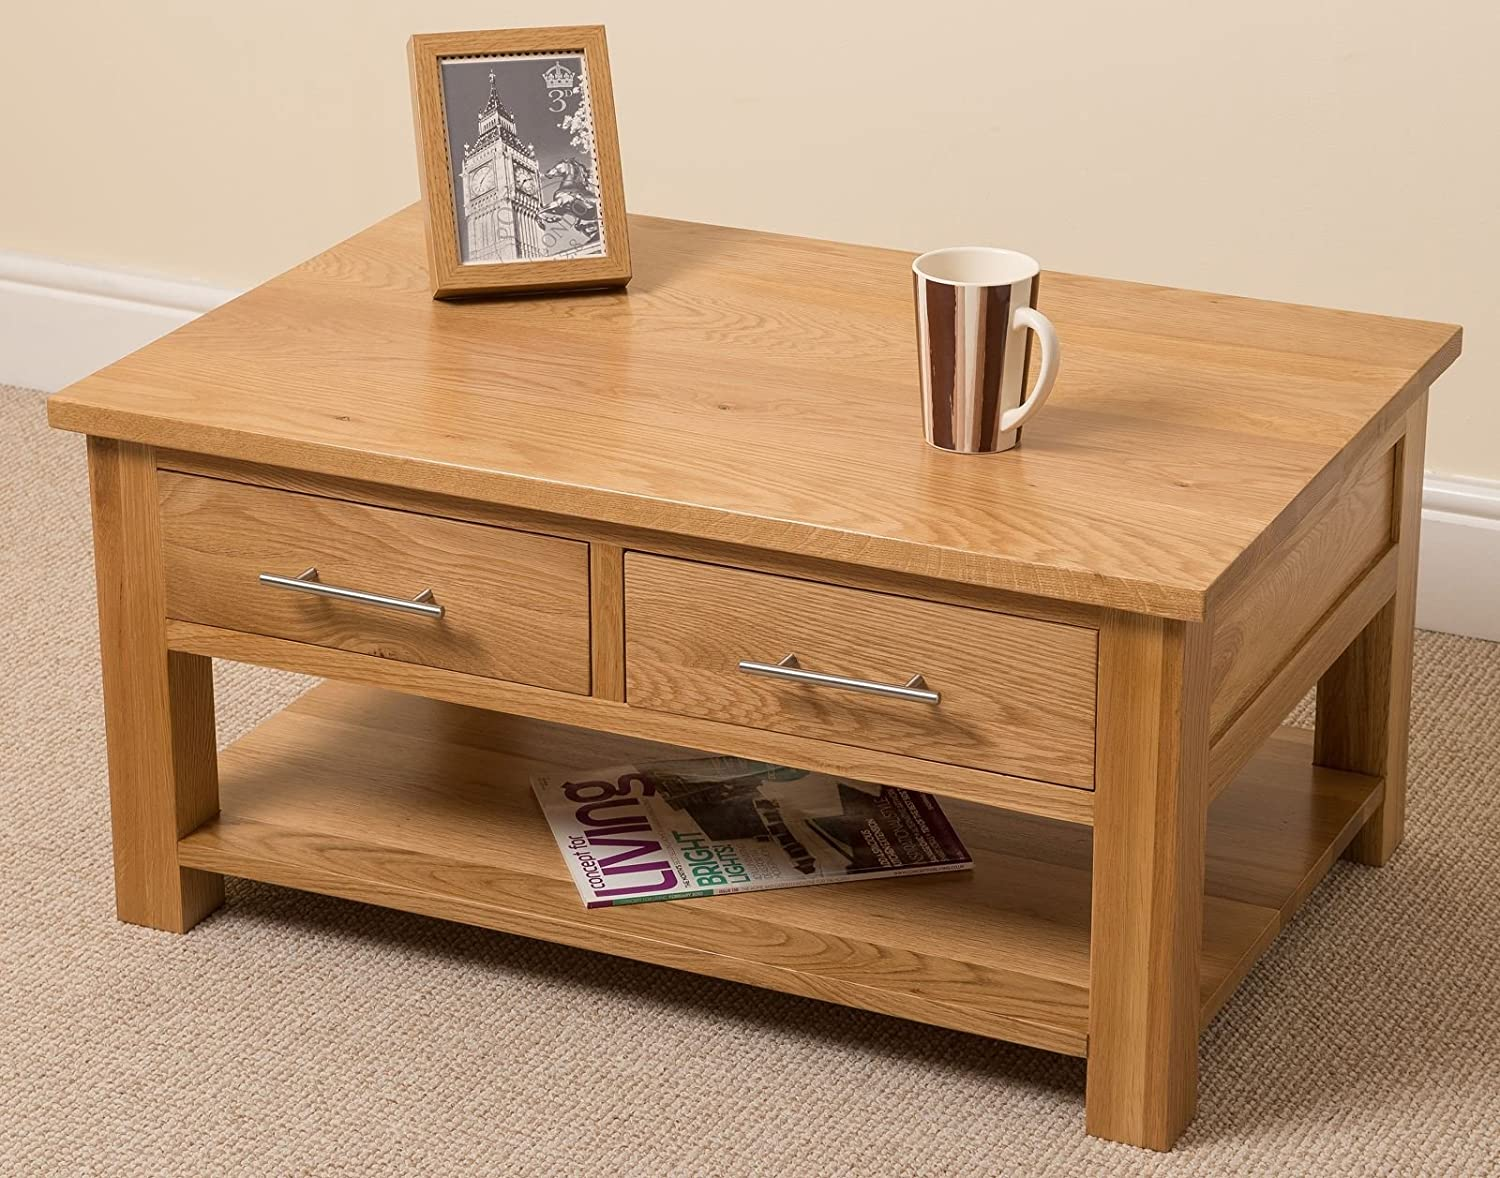 Oslo Solid Oak 2 Drawer Coffee Table 90 x 43 x 60 cm Amazon